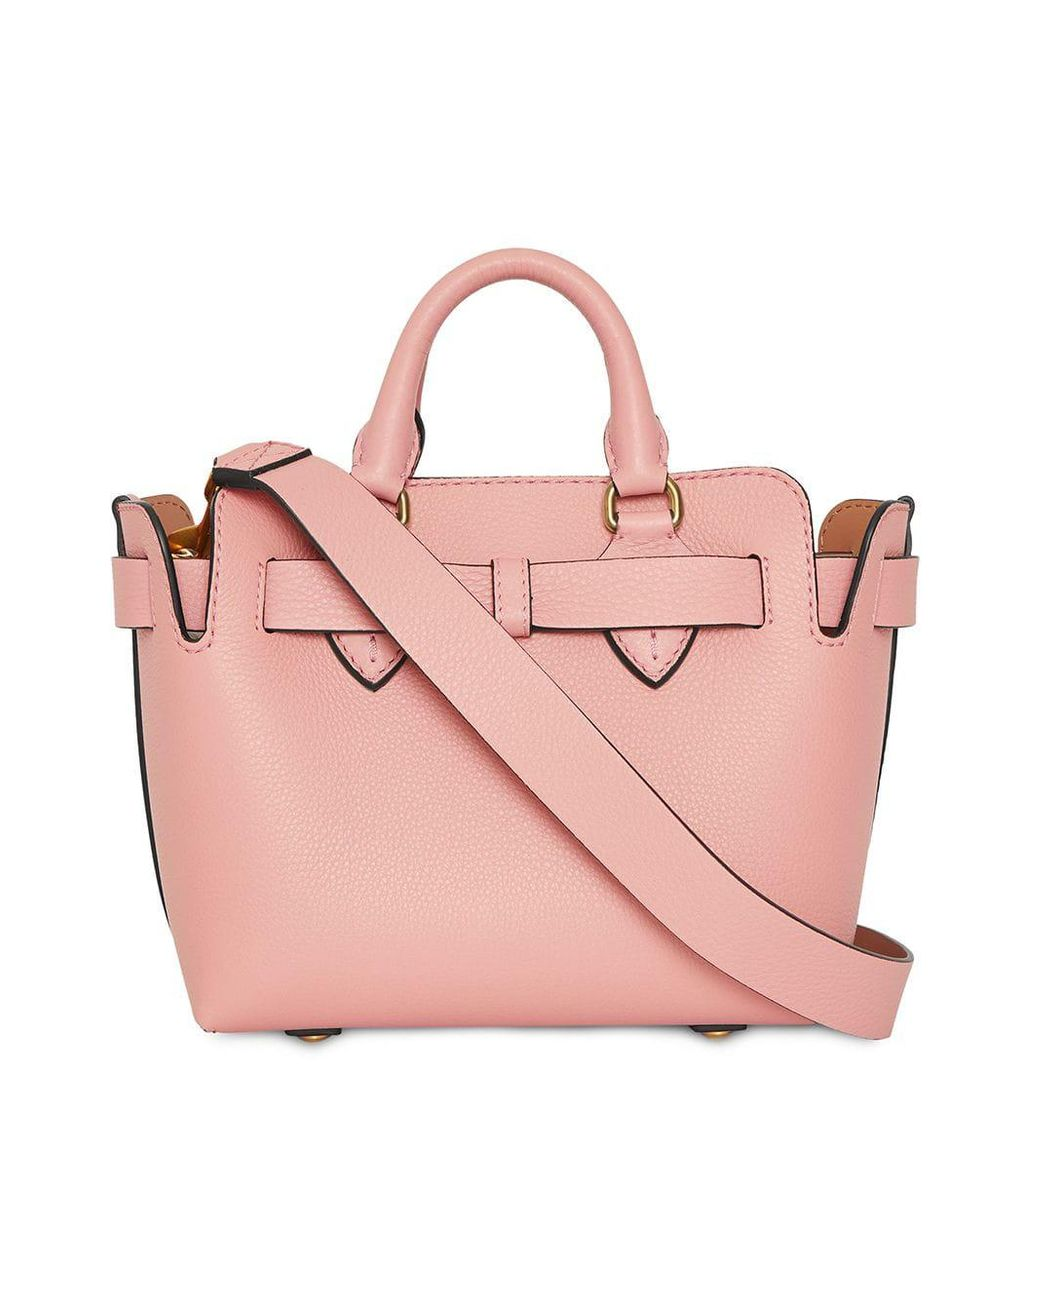 98d00727f1741 Burberry The Mini Leather Belt Bag in Pink - Save 42% - Lyst